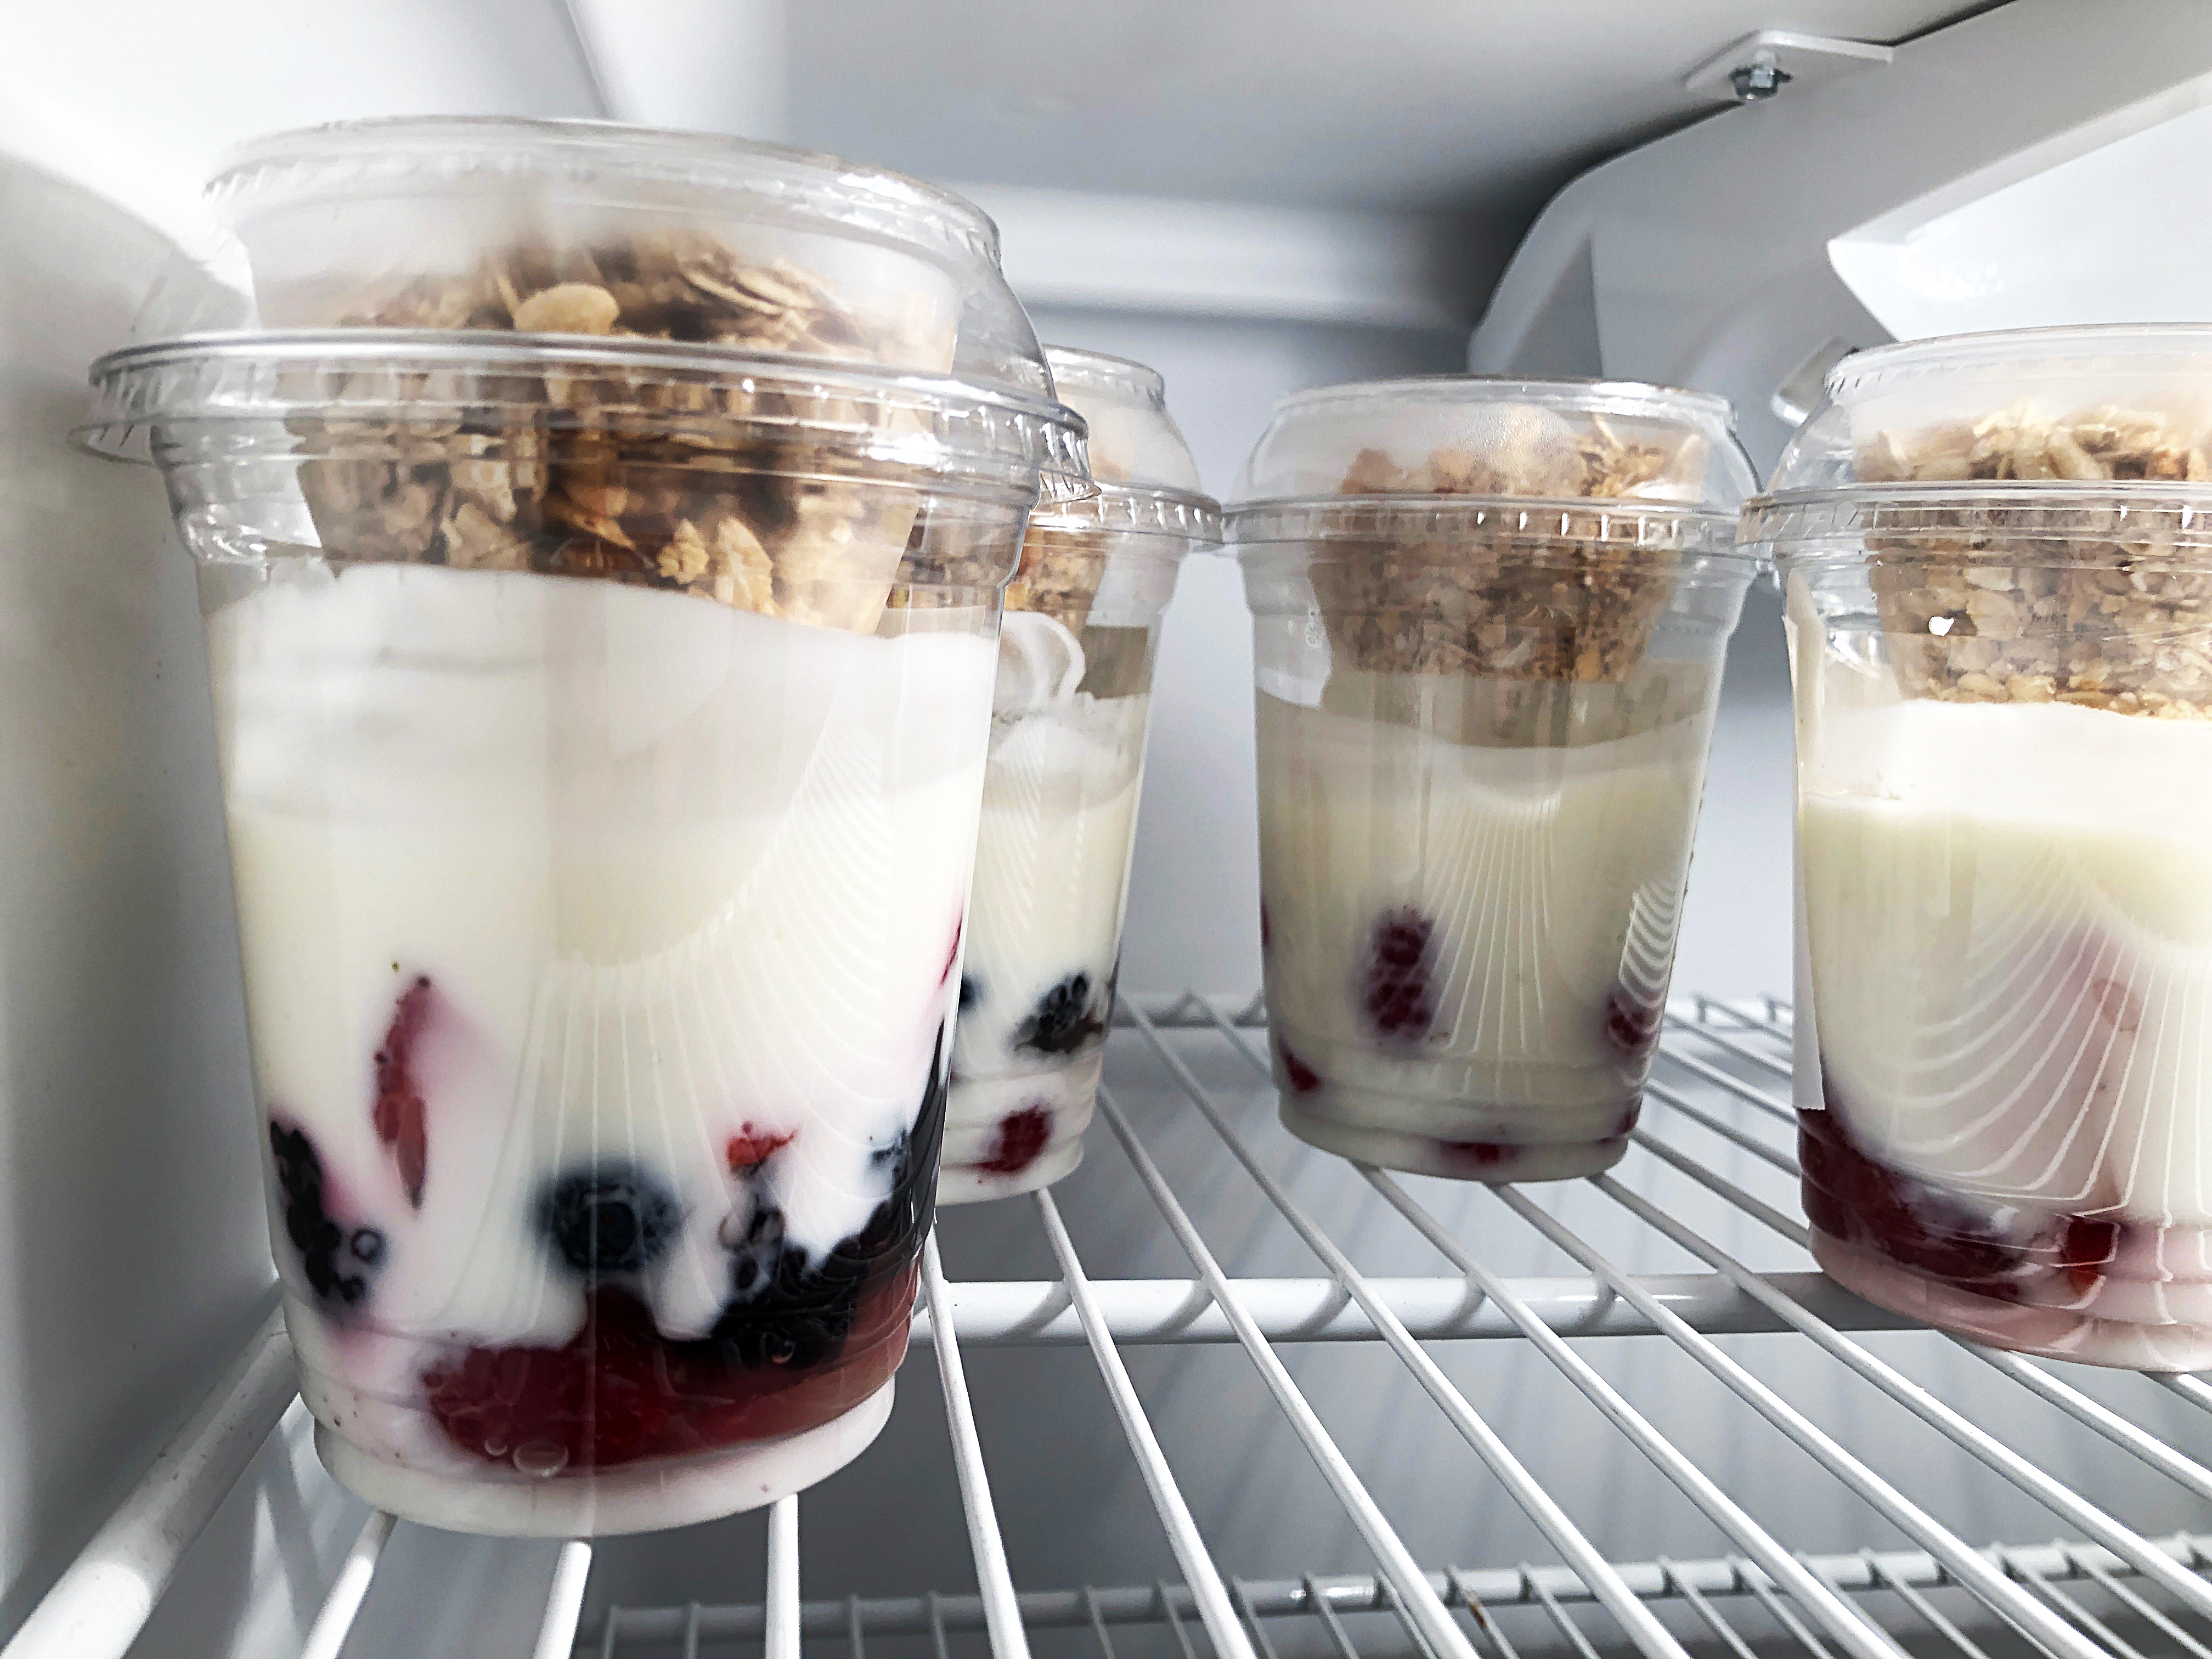 parfait in a to go package